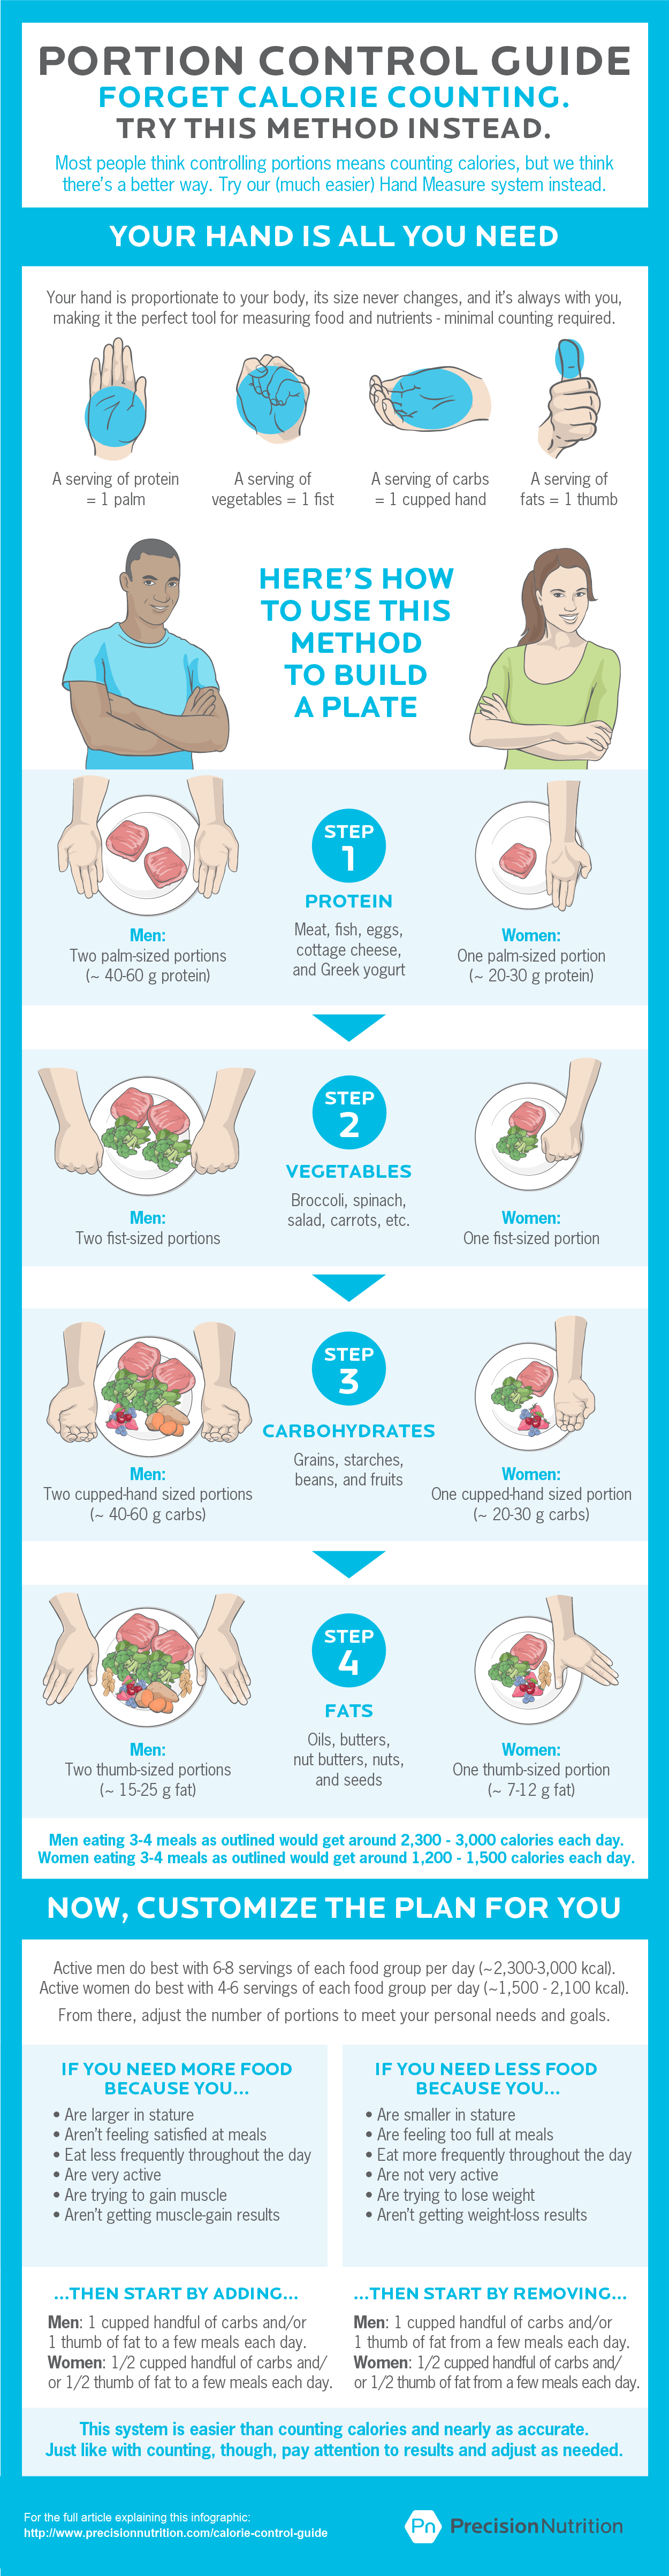 daily calorie intake to lose weight for males